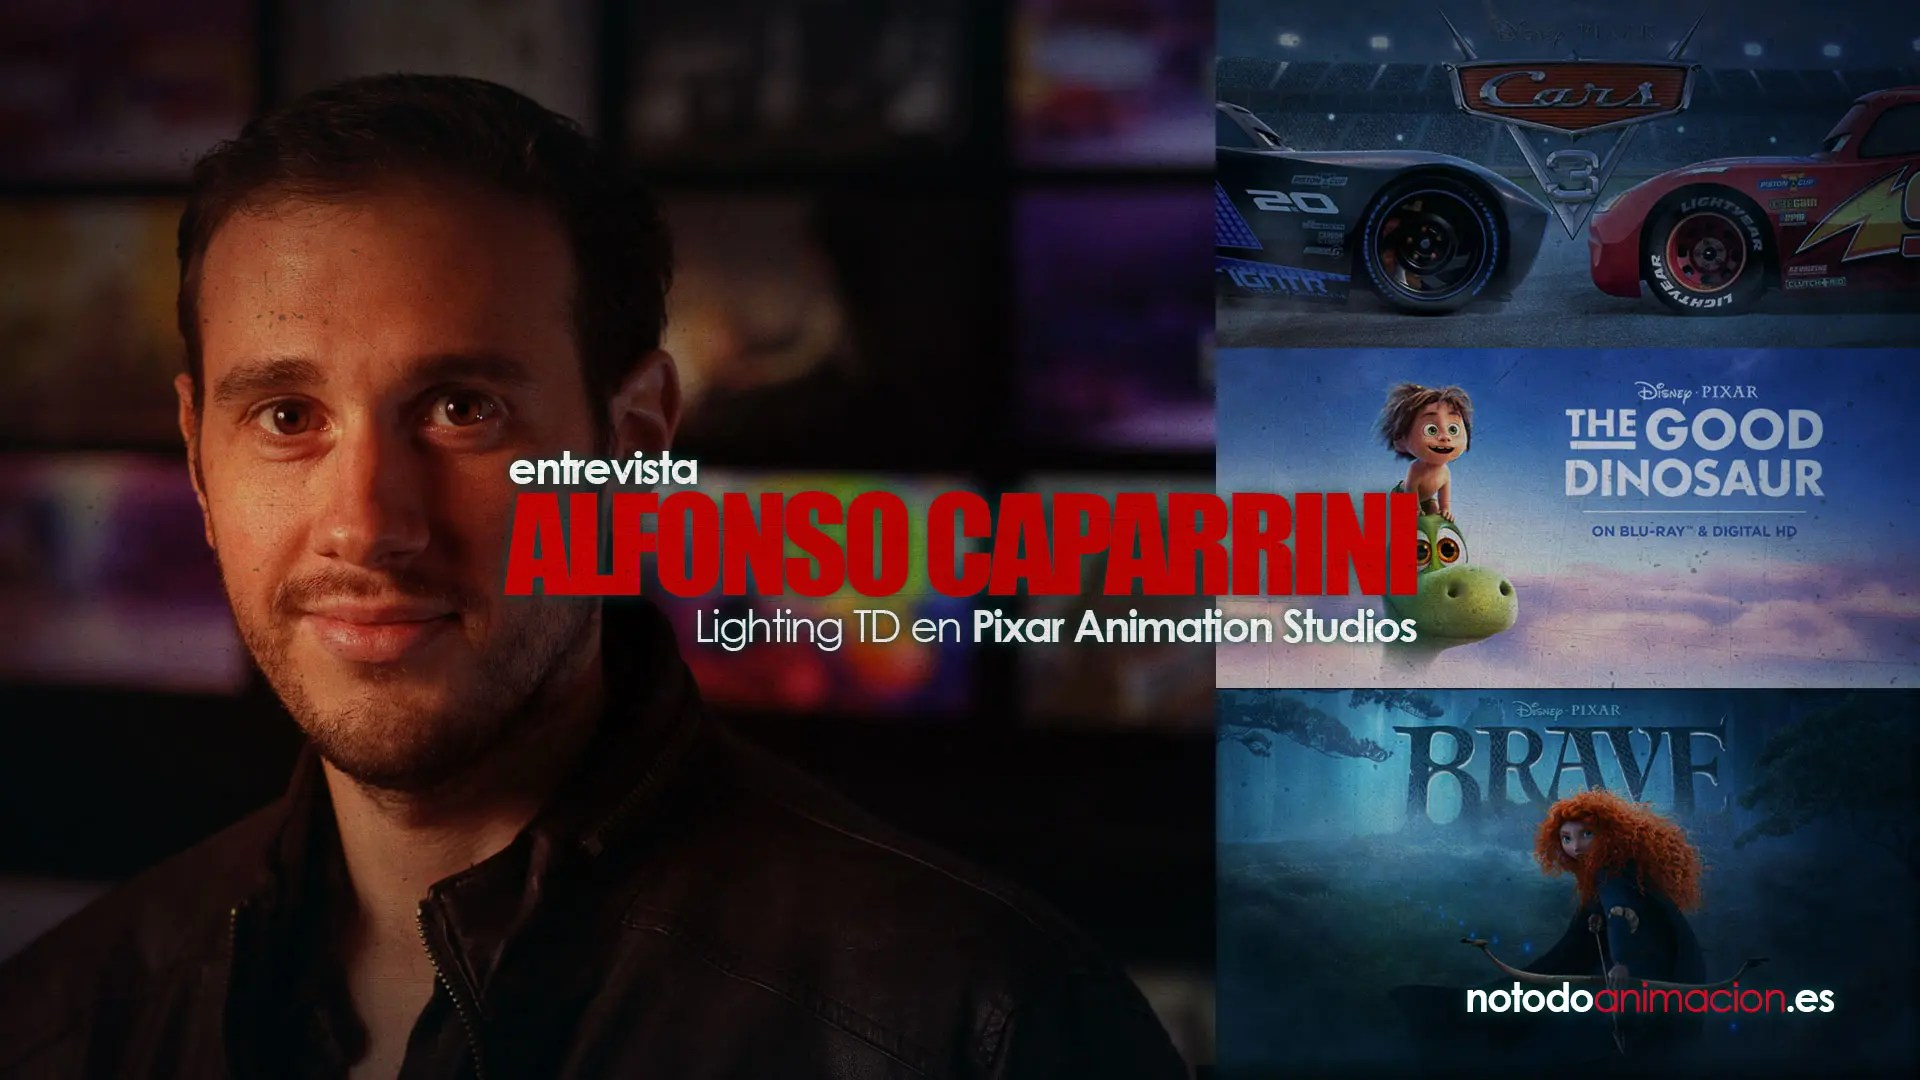 Entrevista a Alfonso Caparrini | Lighting TD en Pixar Animation Studios